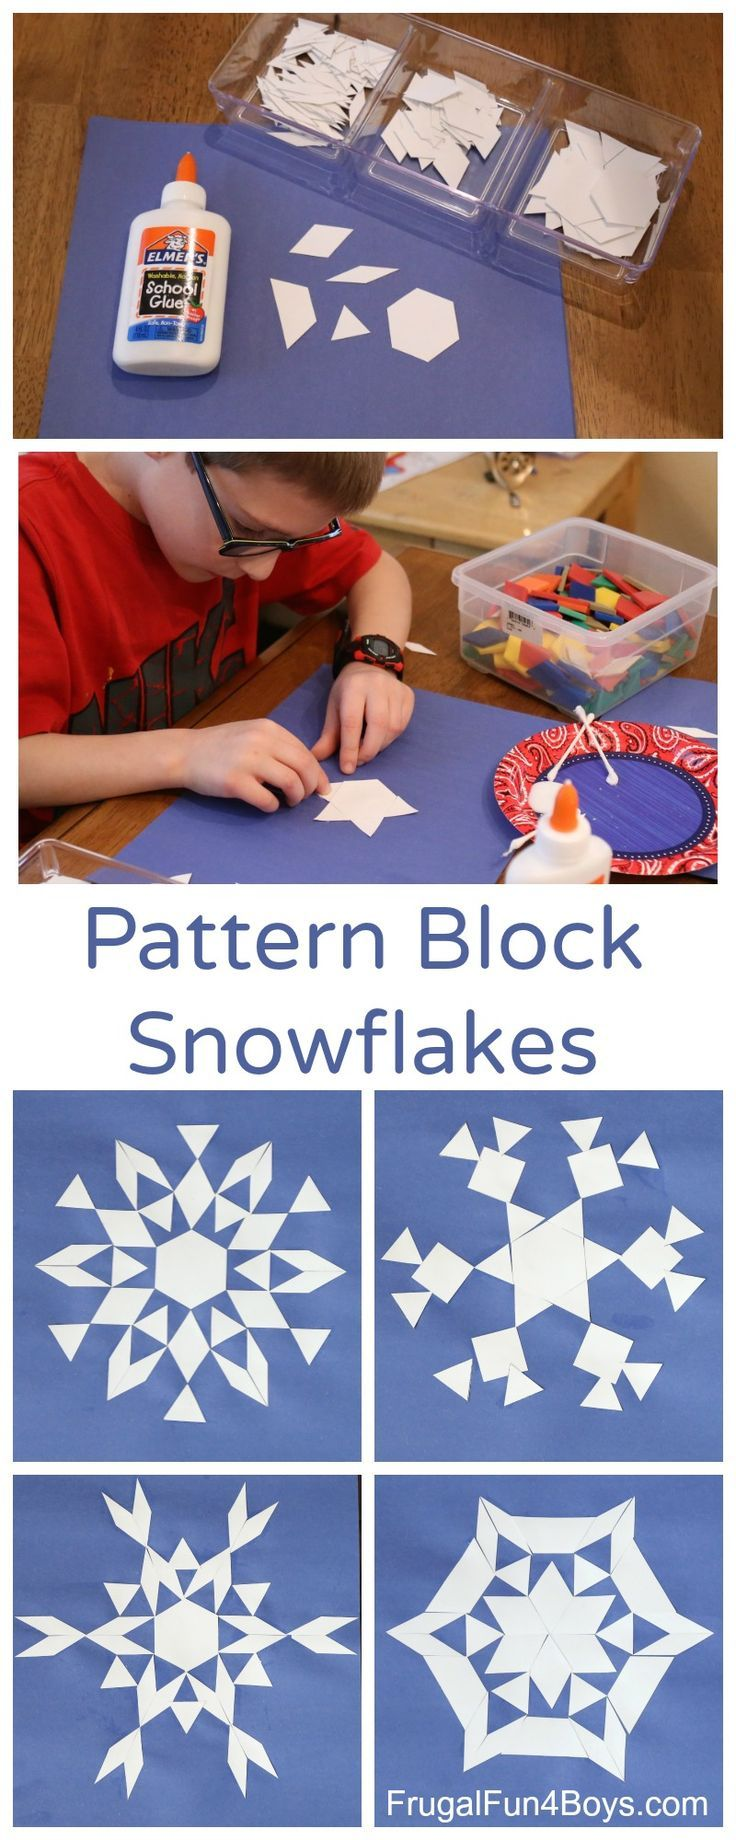 Math Art: Make Pattern Block Snowflakes. Awesome geometry activity for kids of all ages.